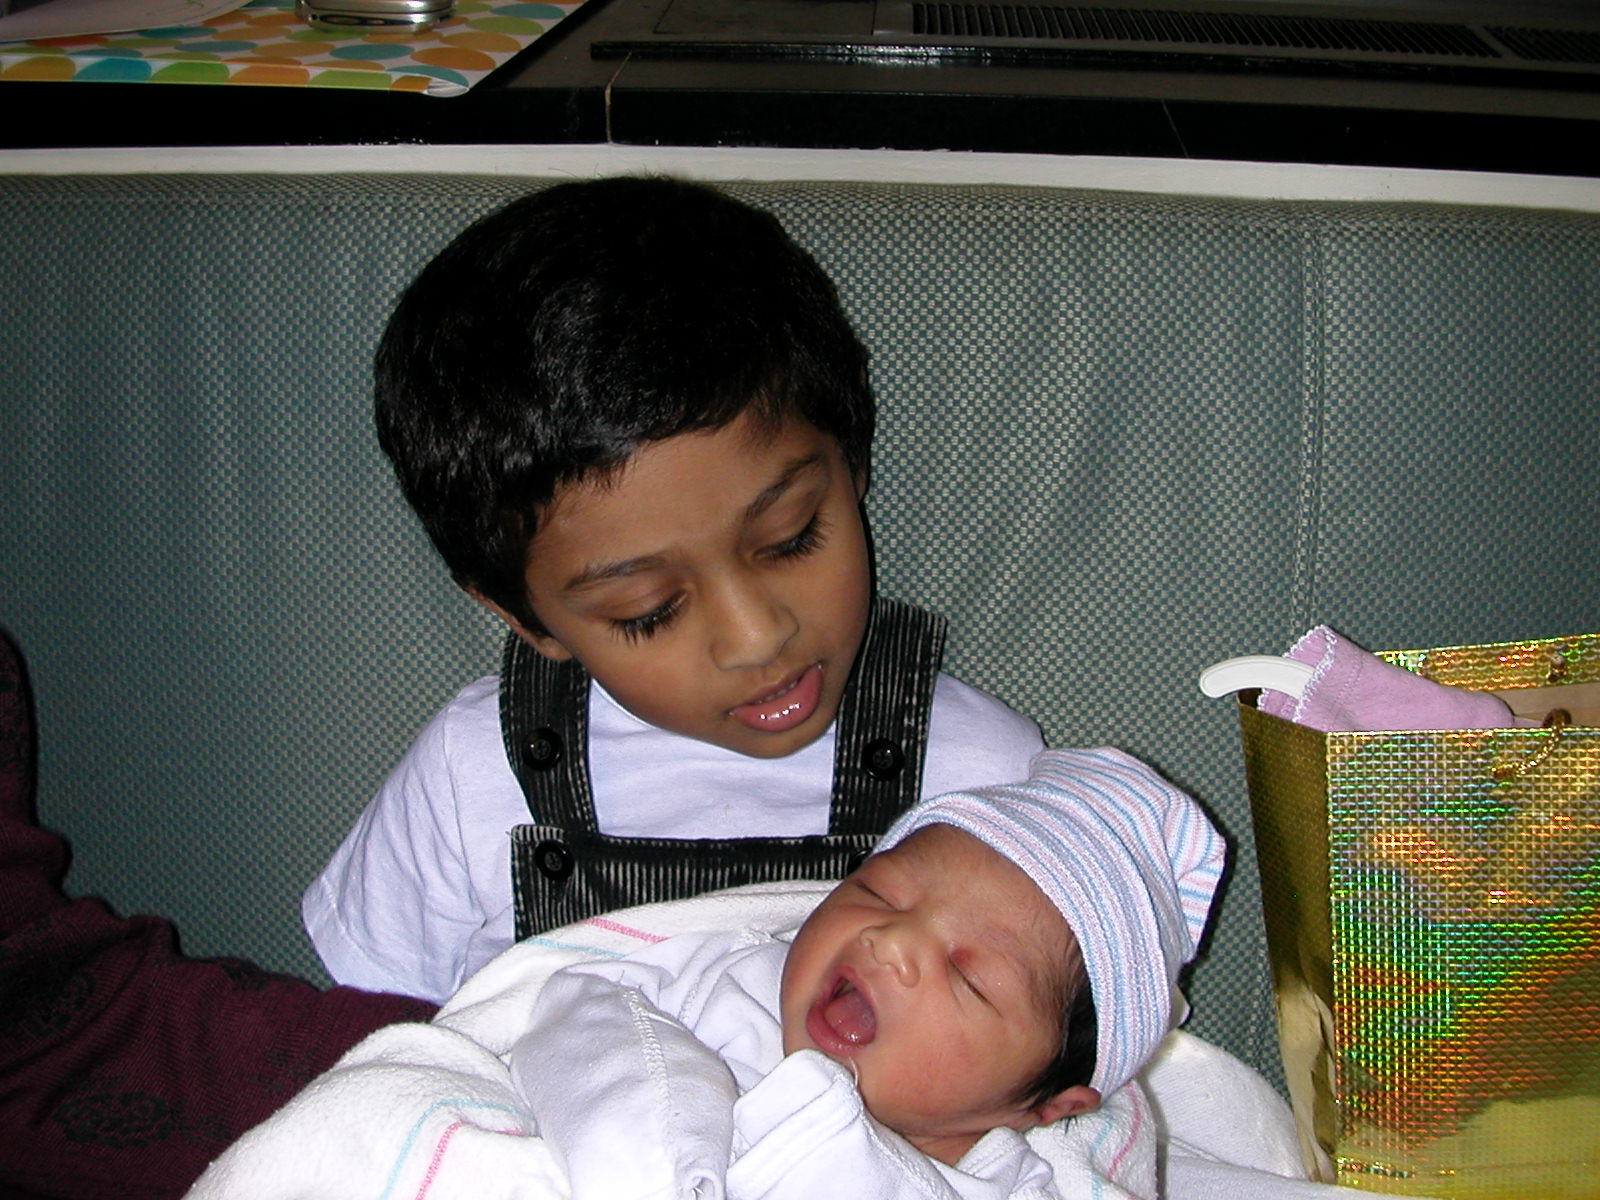 Older brother carefully holding his sister